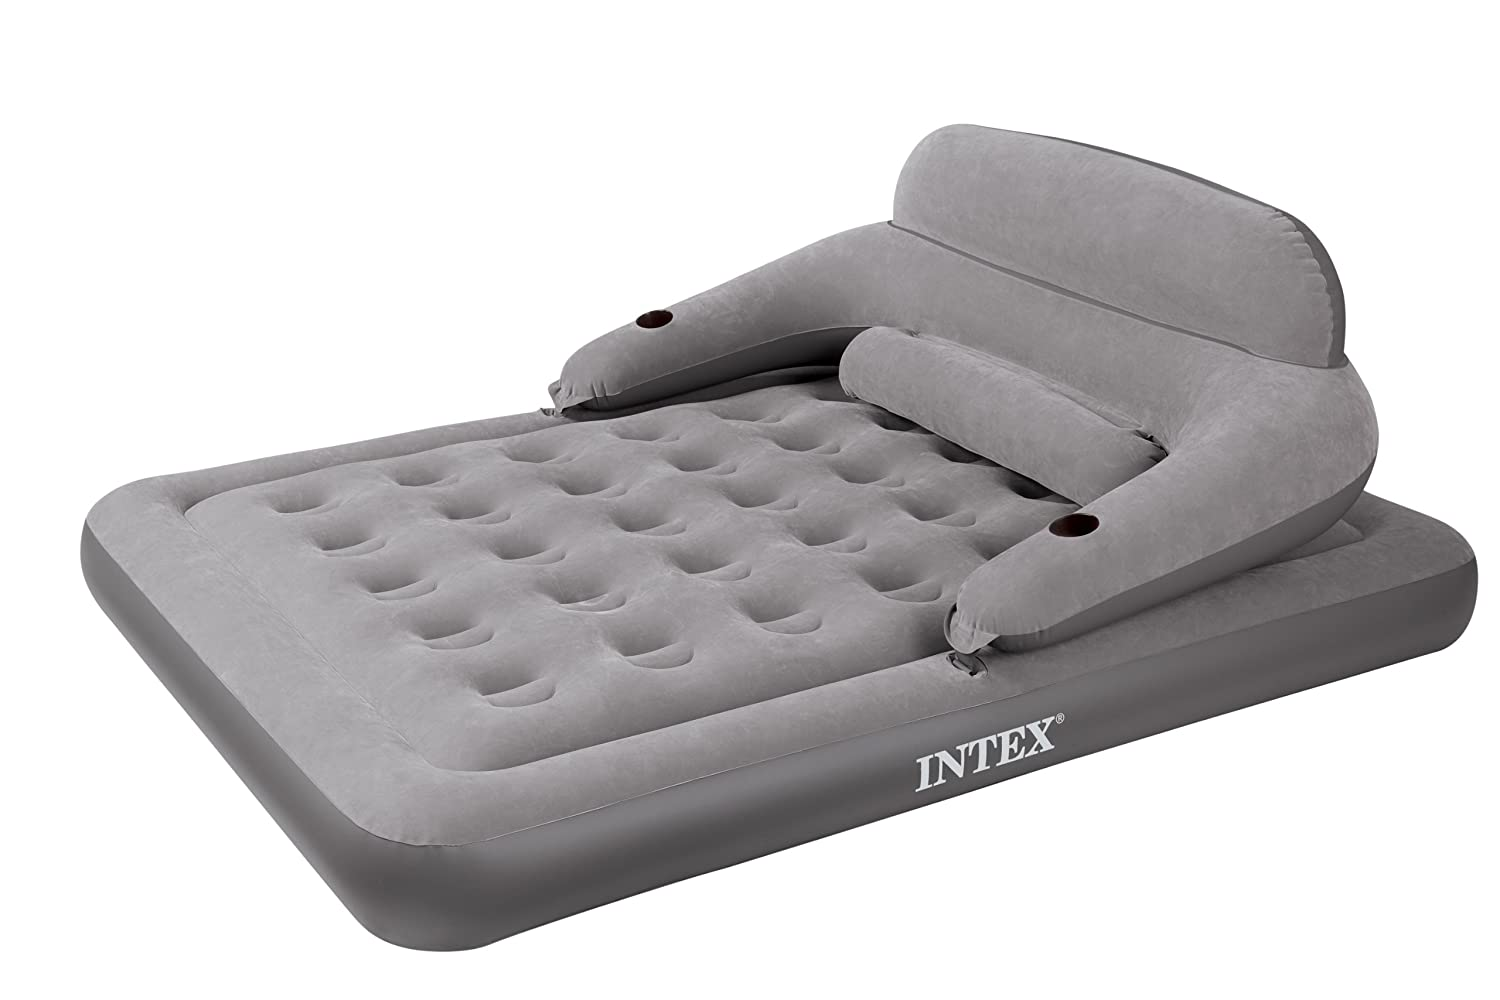 Awesome Amazon.com : Intex Convertible Lounge Queen Bed Kit : Camping Air  Mattresses : Sports U0026 Outdoors